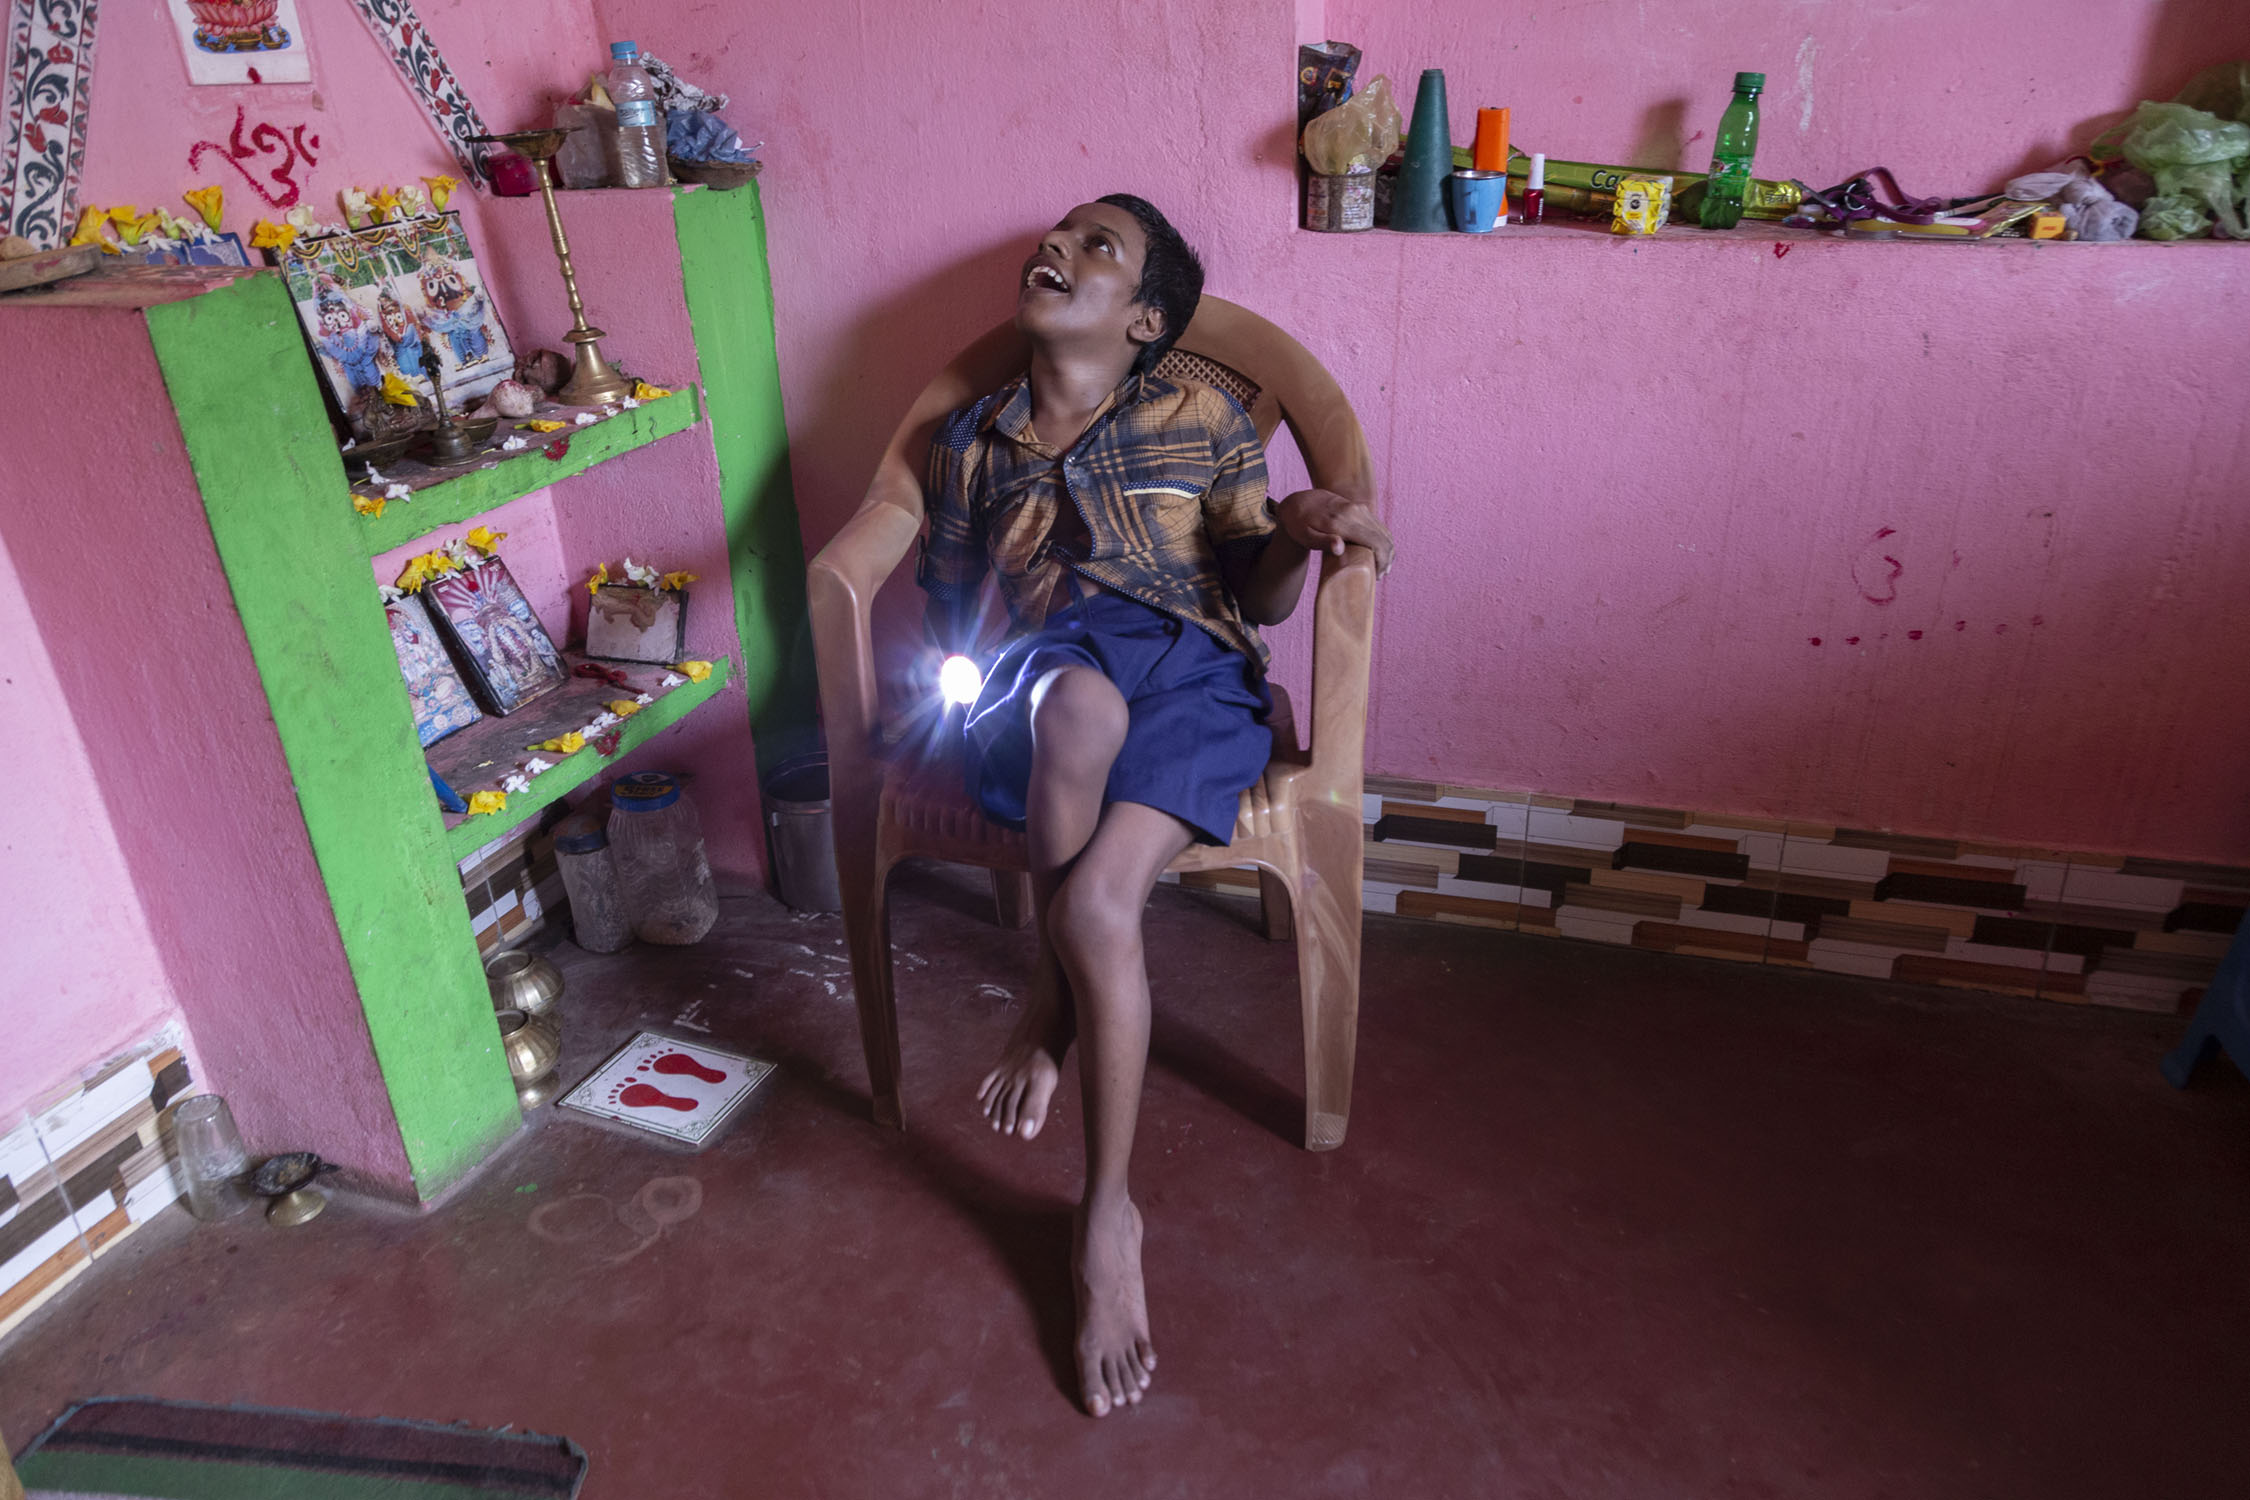 Asis, sitting in a light brown plastic chair and wearing a light brown and purple checked shirt with purple shorts, is looking upwards and smiling. The room has a red cement floor and bright pink walls. To the left is a cement shelf painted bright green and pink. There are devotional pictures and brass lamps on the two ledges of the shelf.